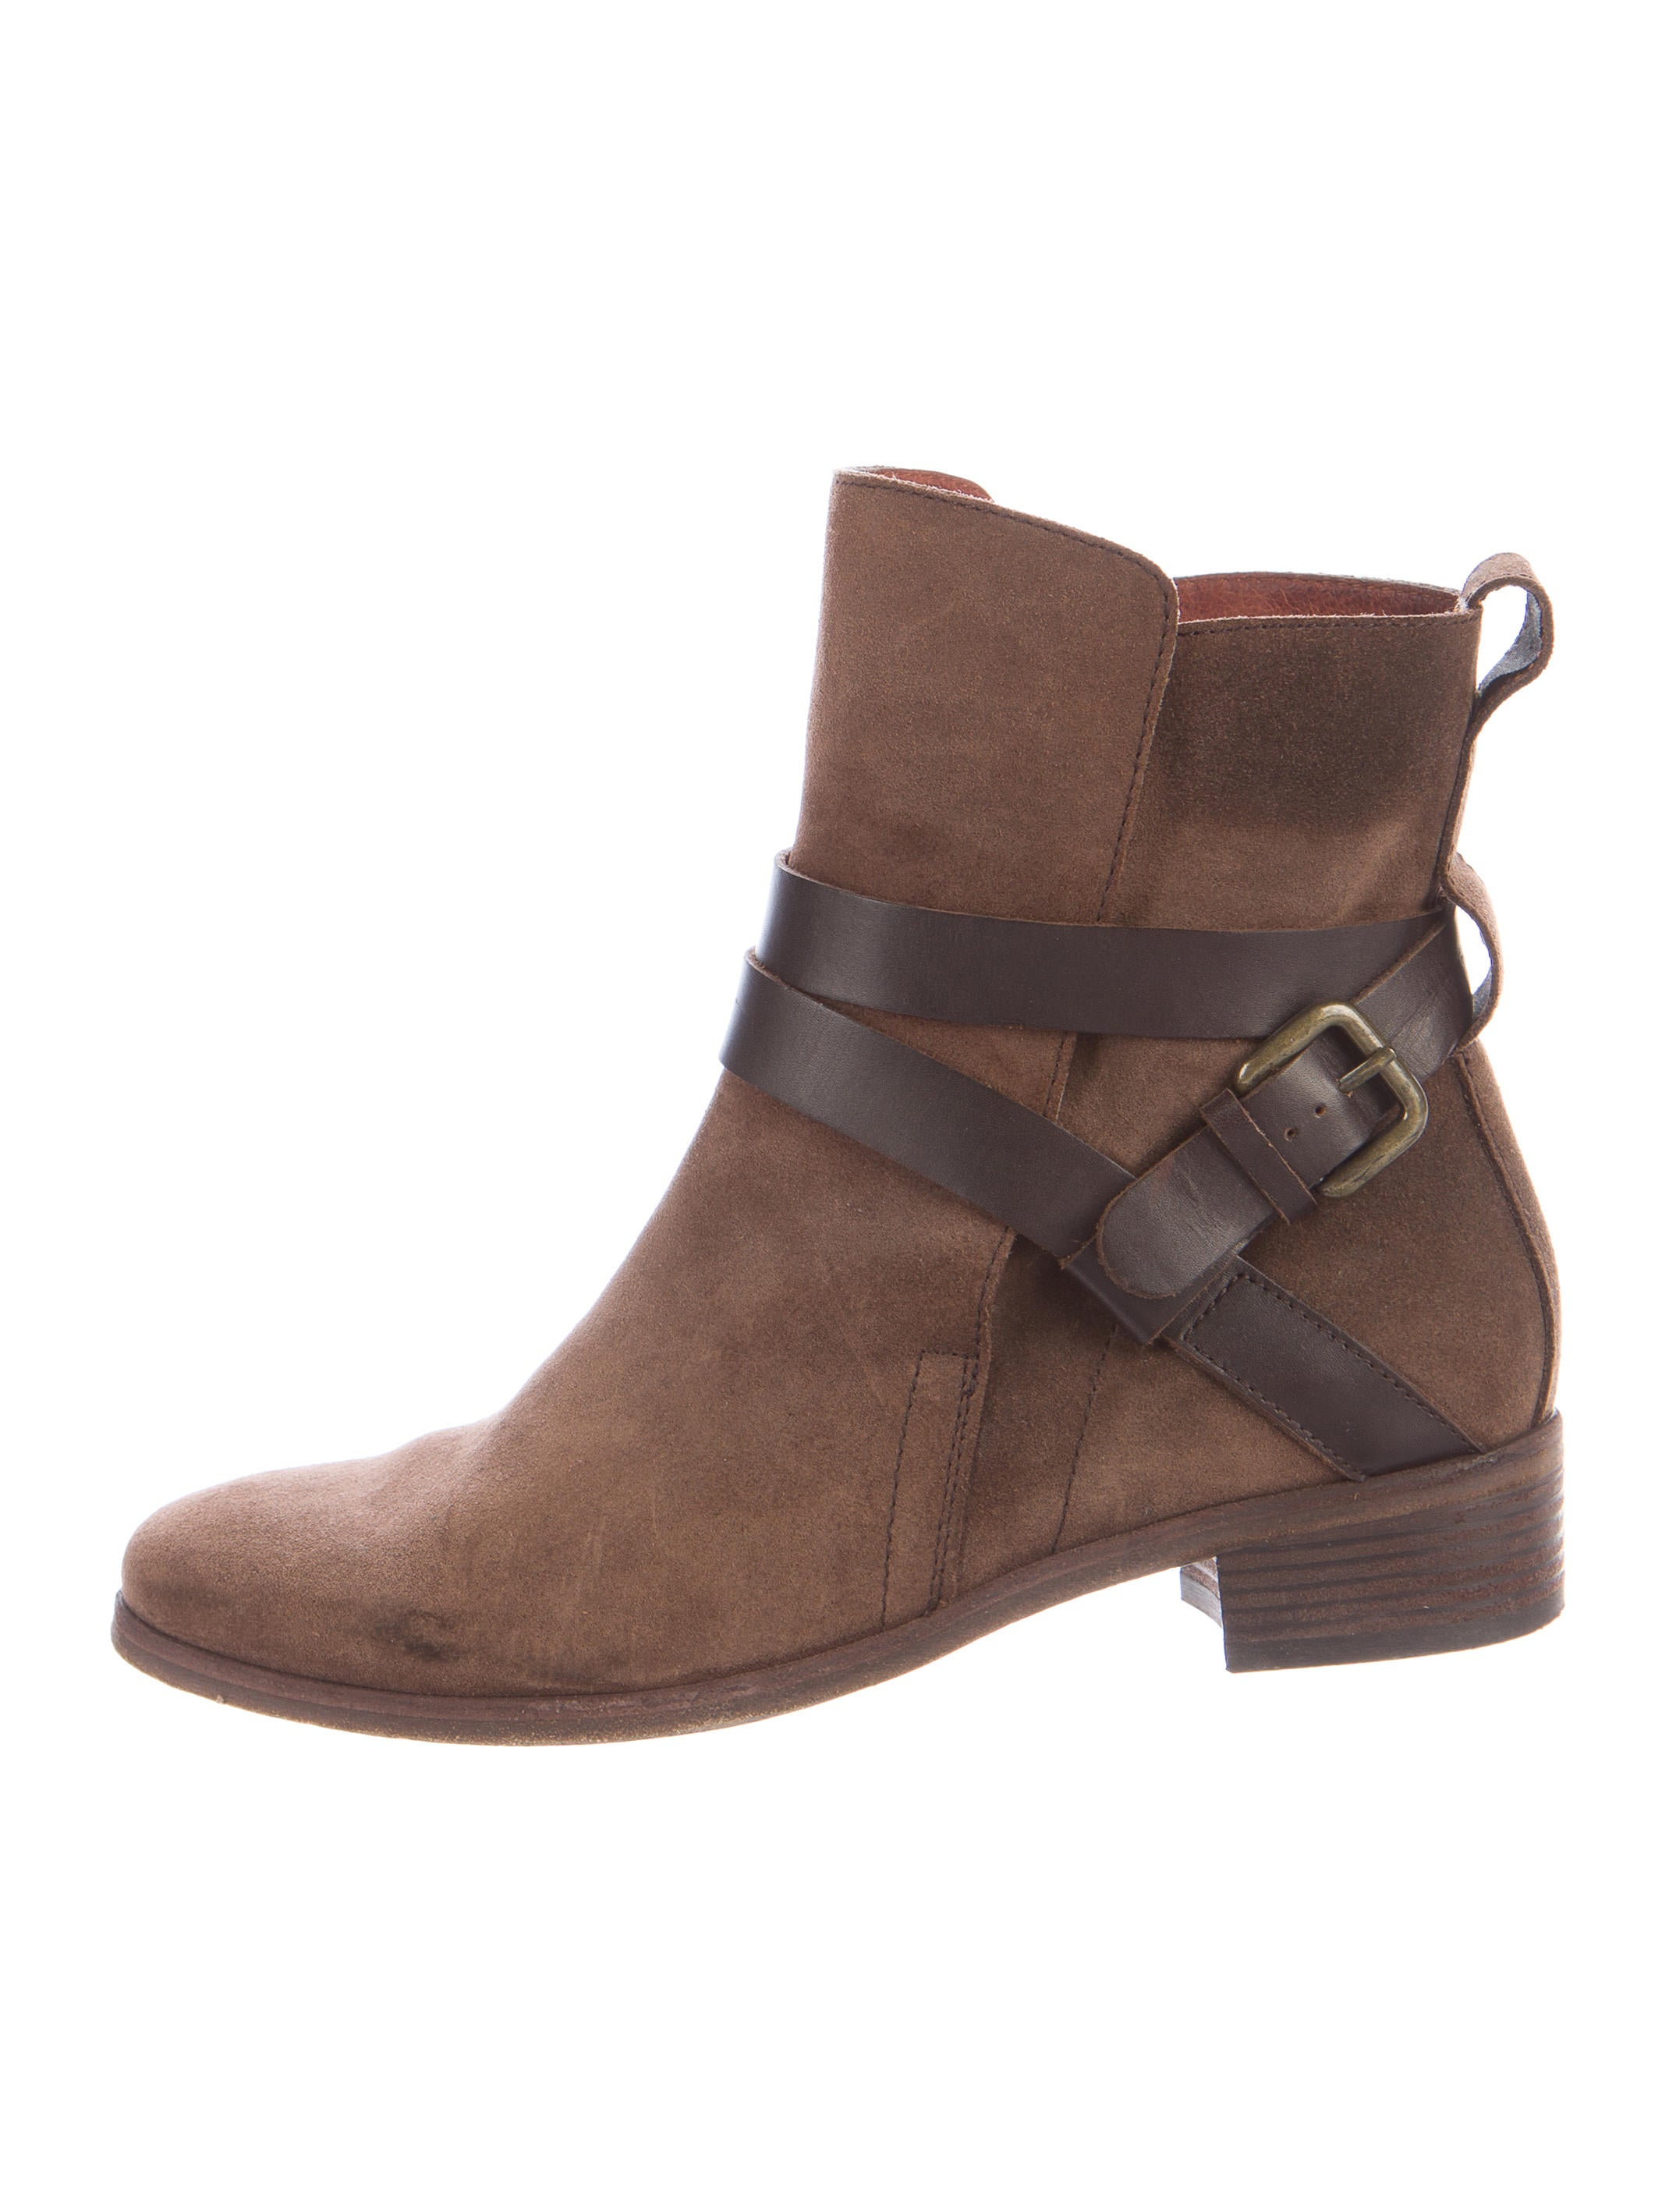 see by chlo 233 suede buckle accented boots shoes